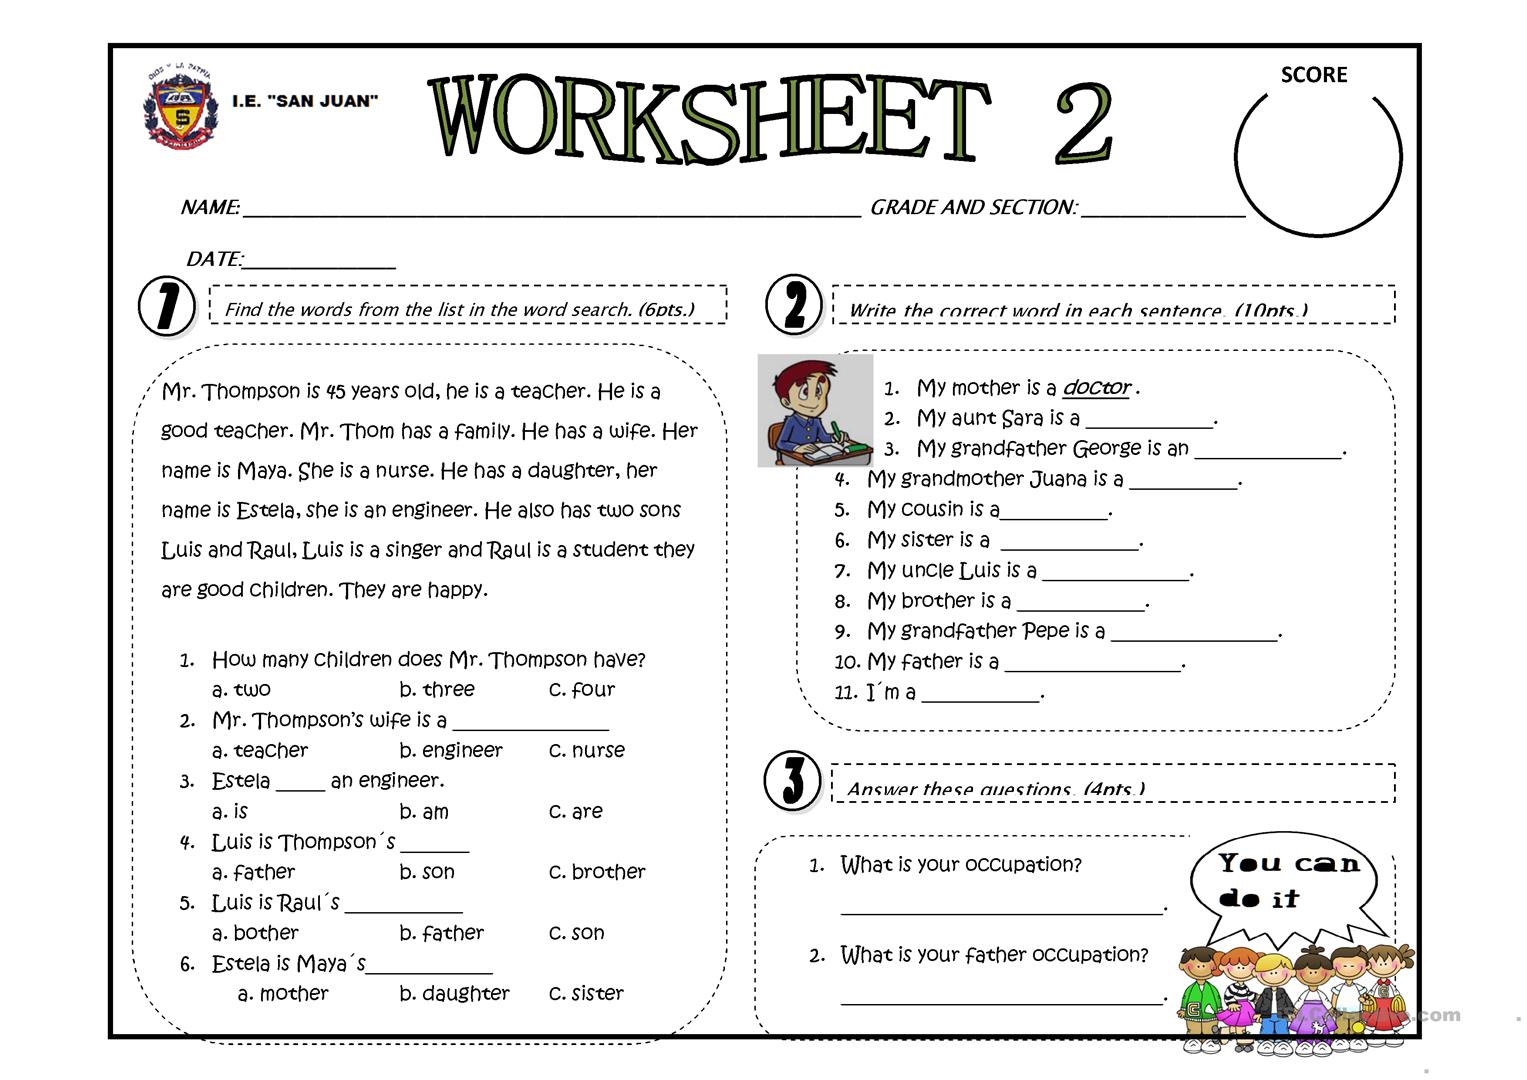 85 Jobs Worksheet For Grade 2